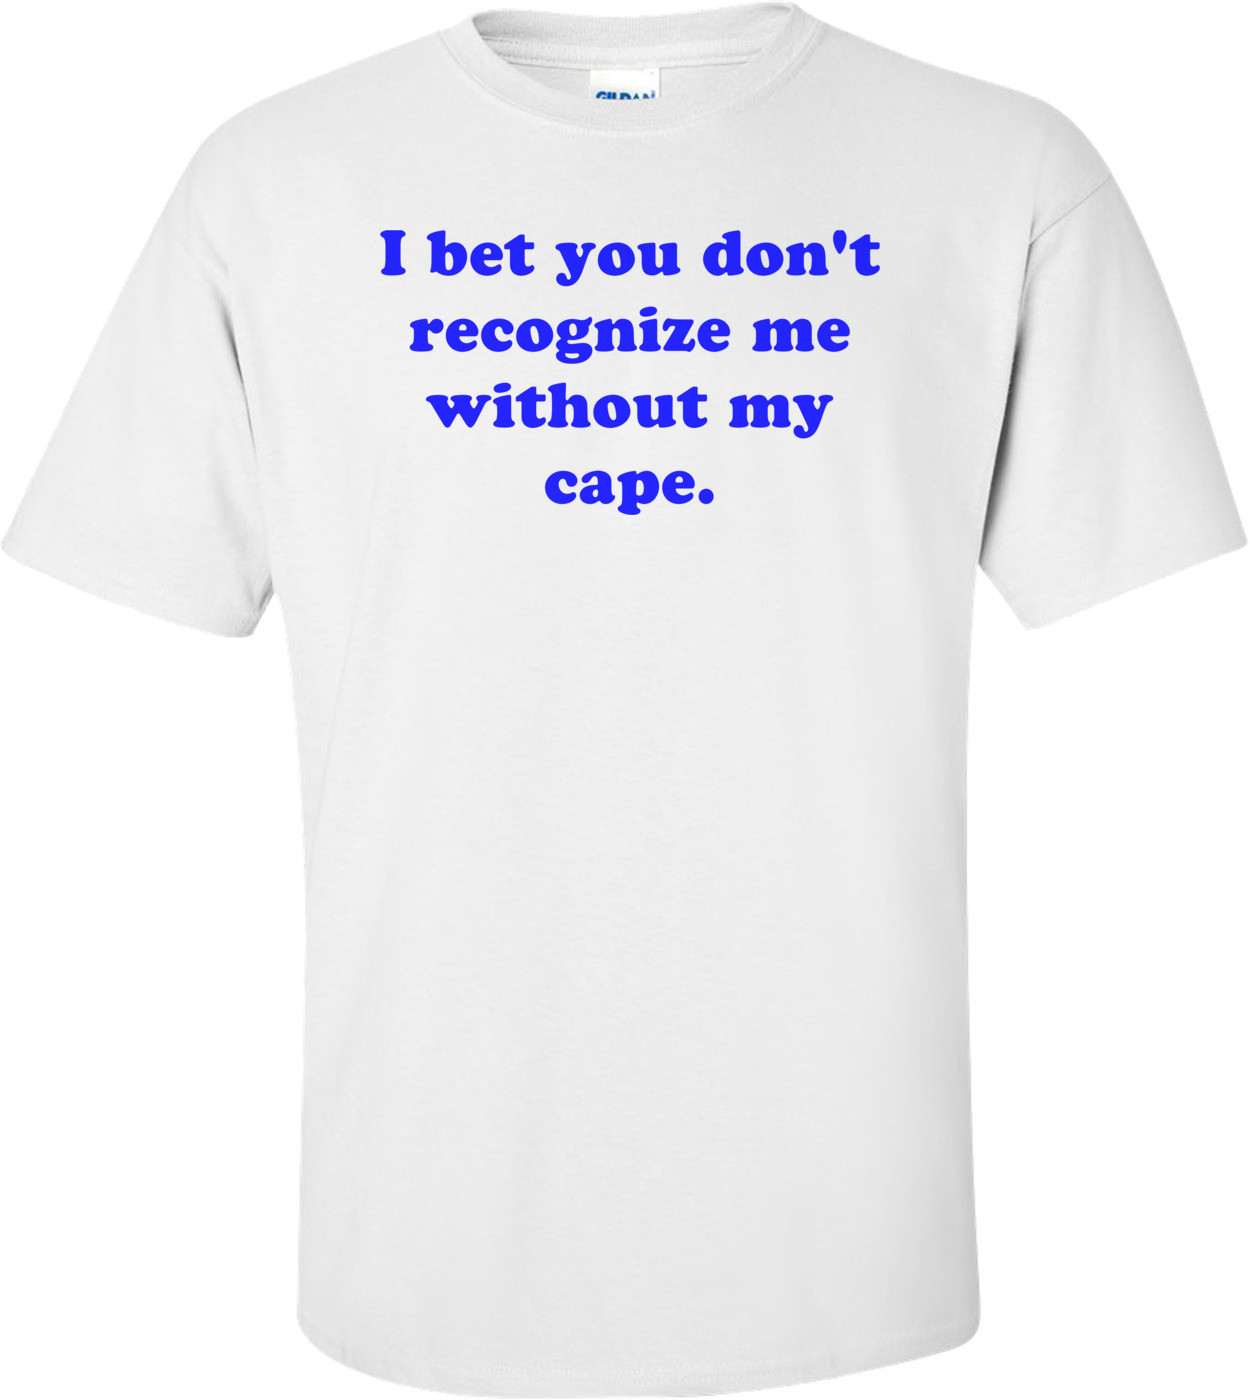 I bet you don't recognize me without my cape. Shirt